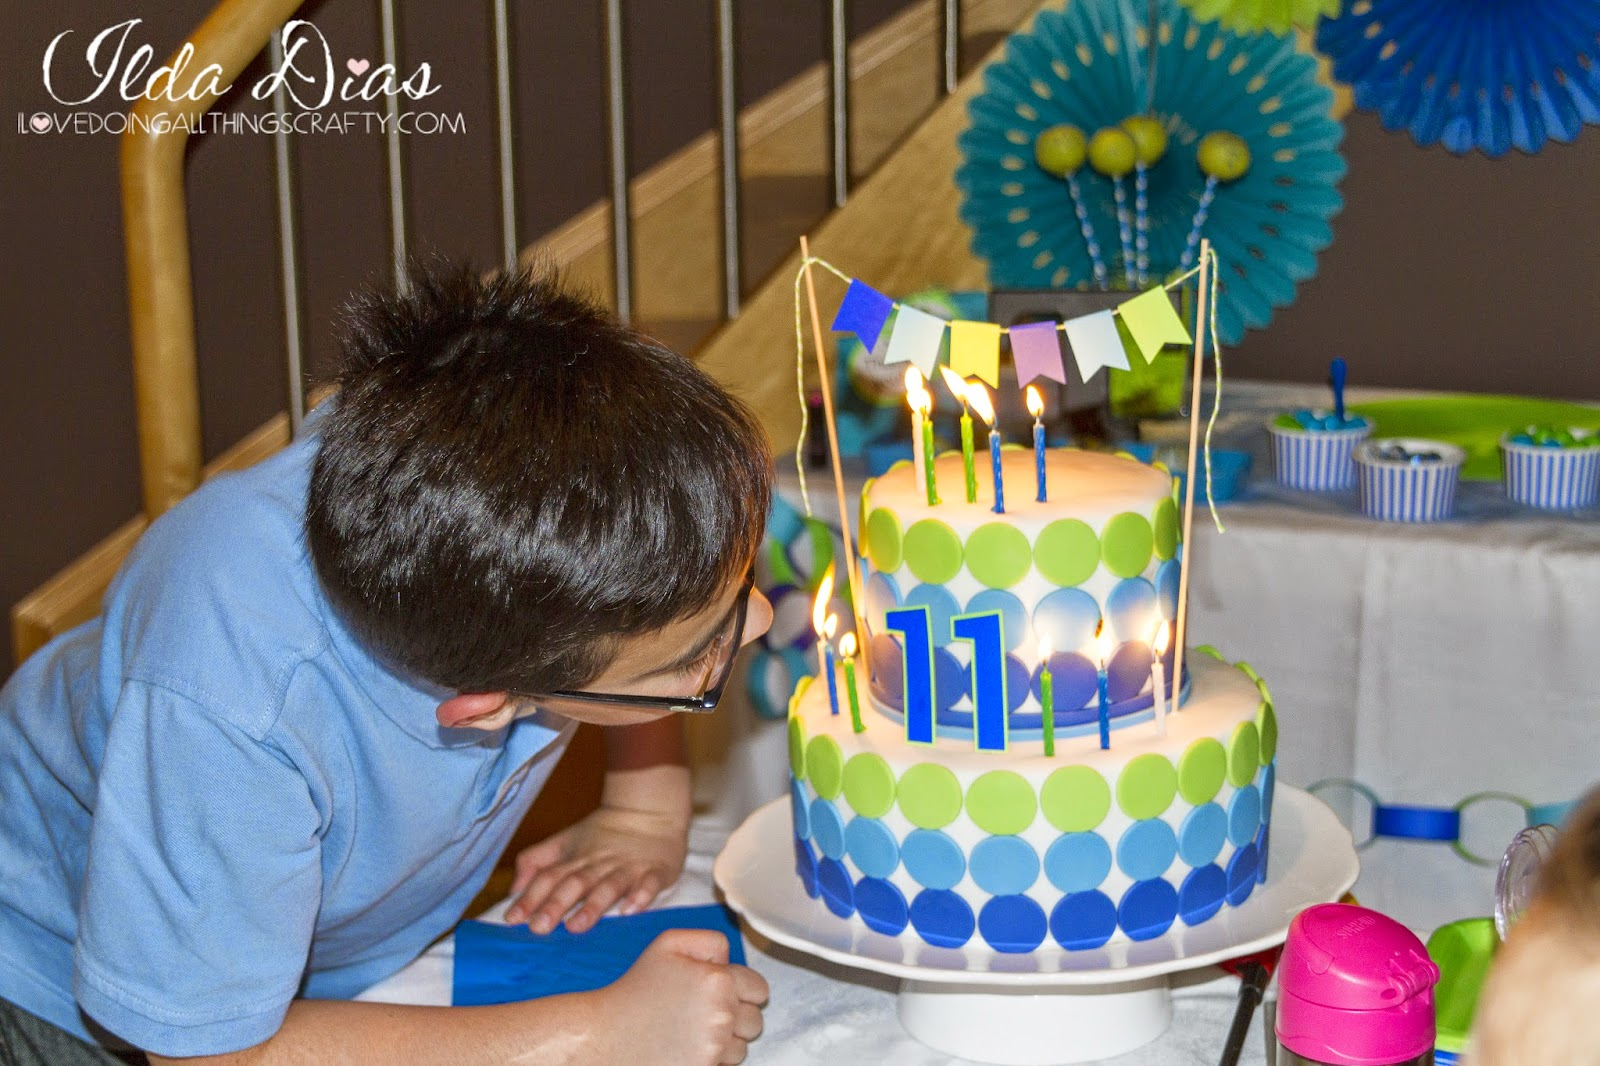 And Here Is My 11 Year Old Blowing Out His Candles